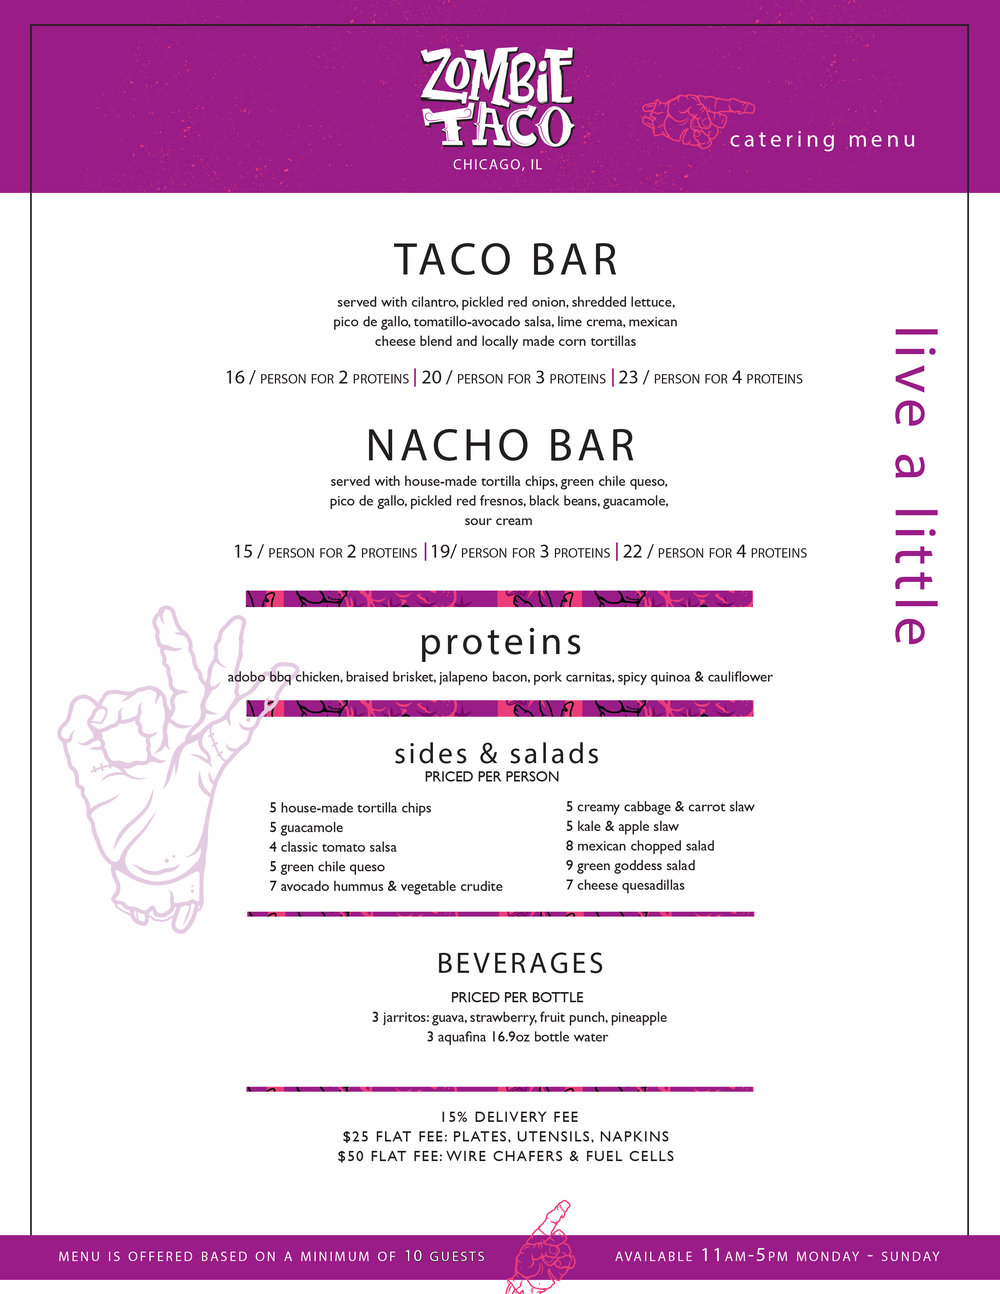 Zombie Taco Chicago Catering Menu.jpg